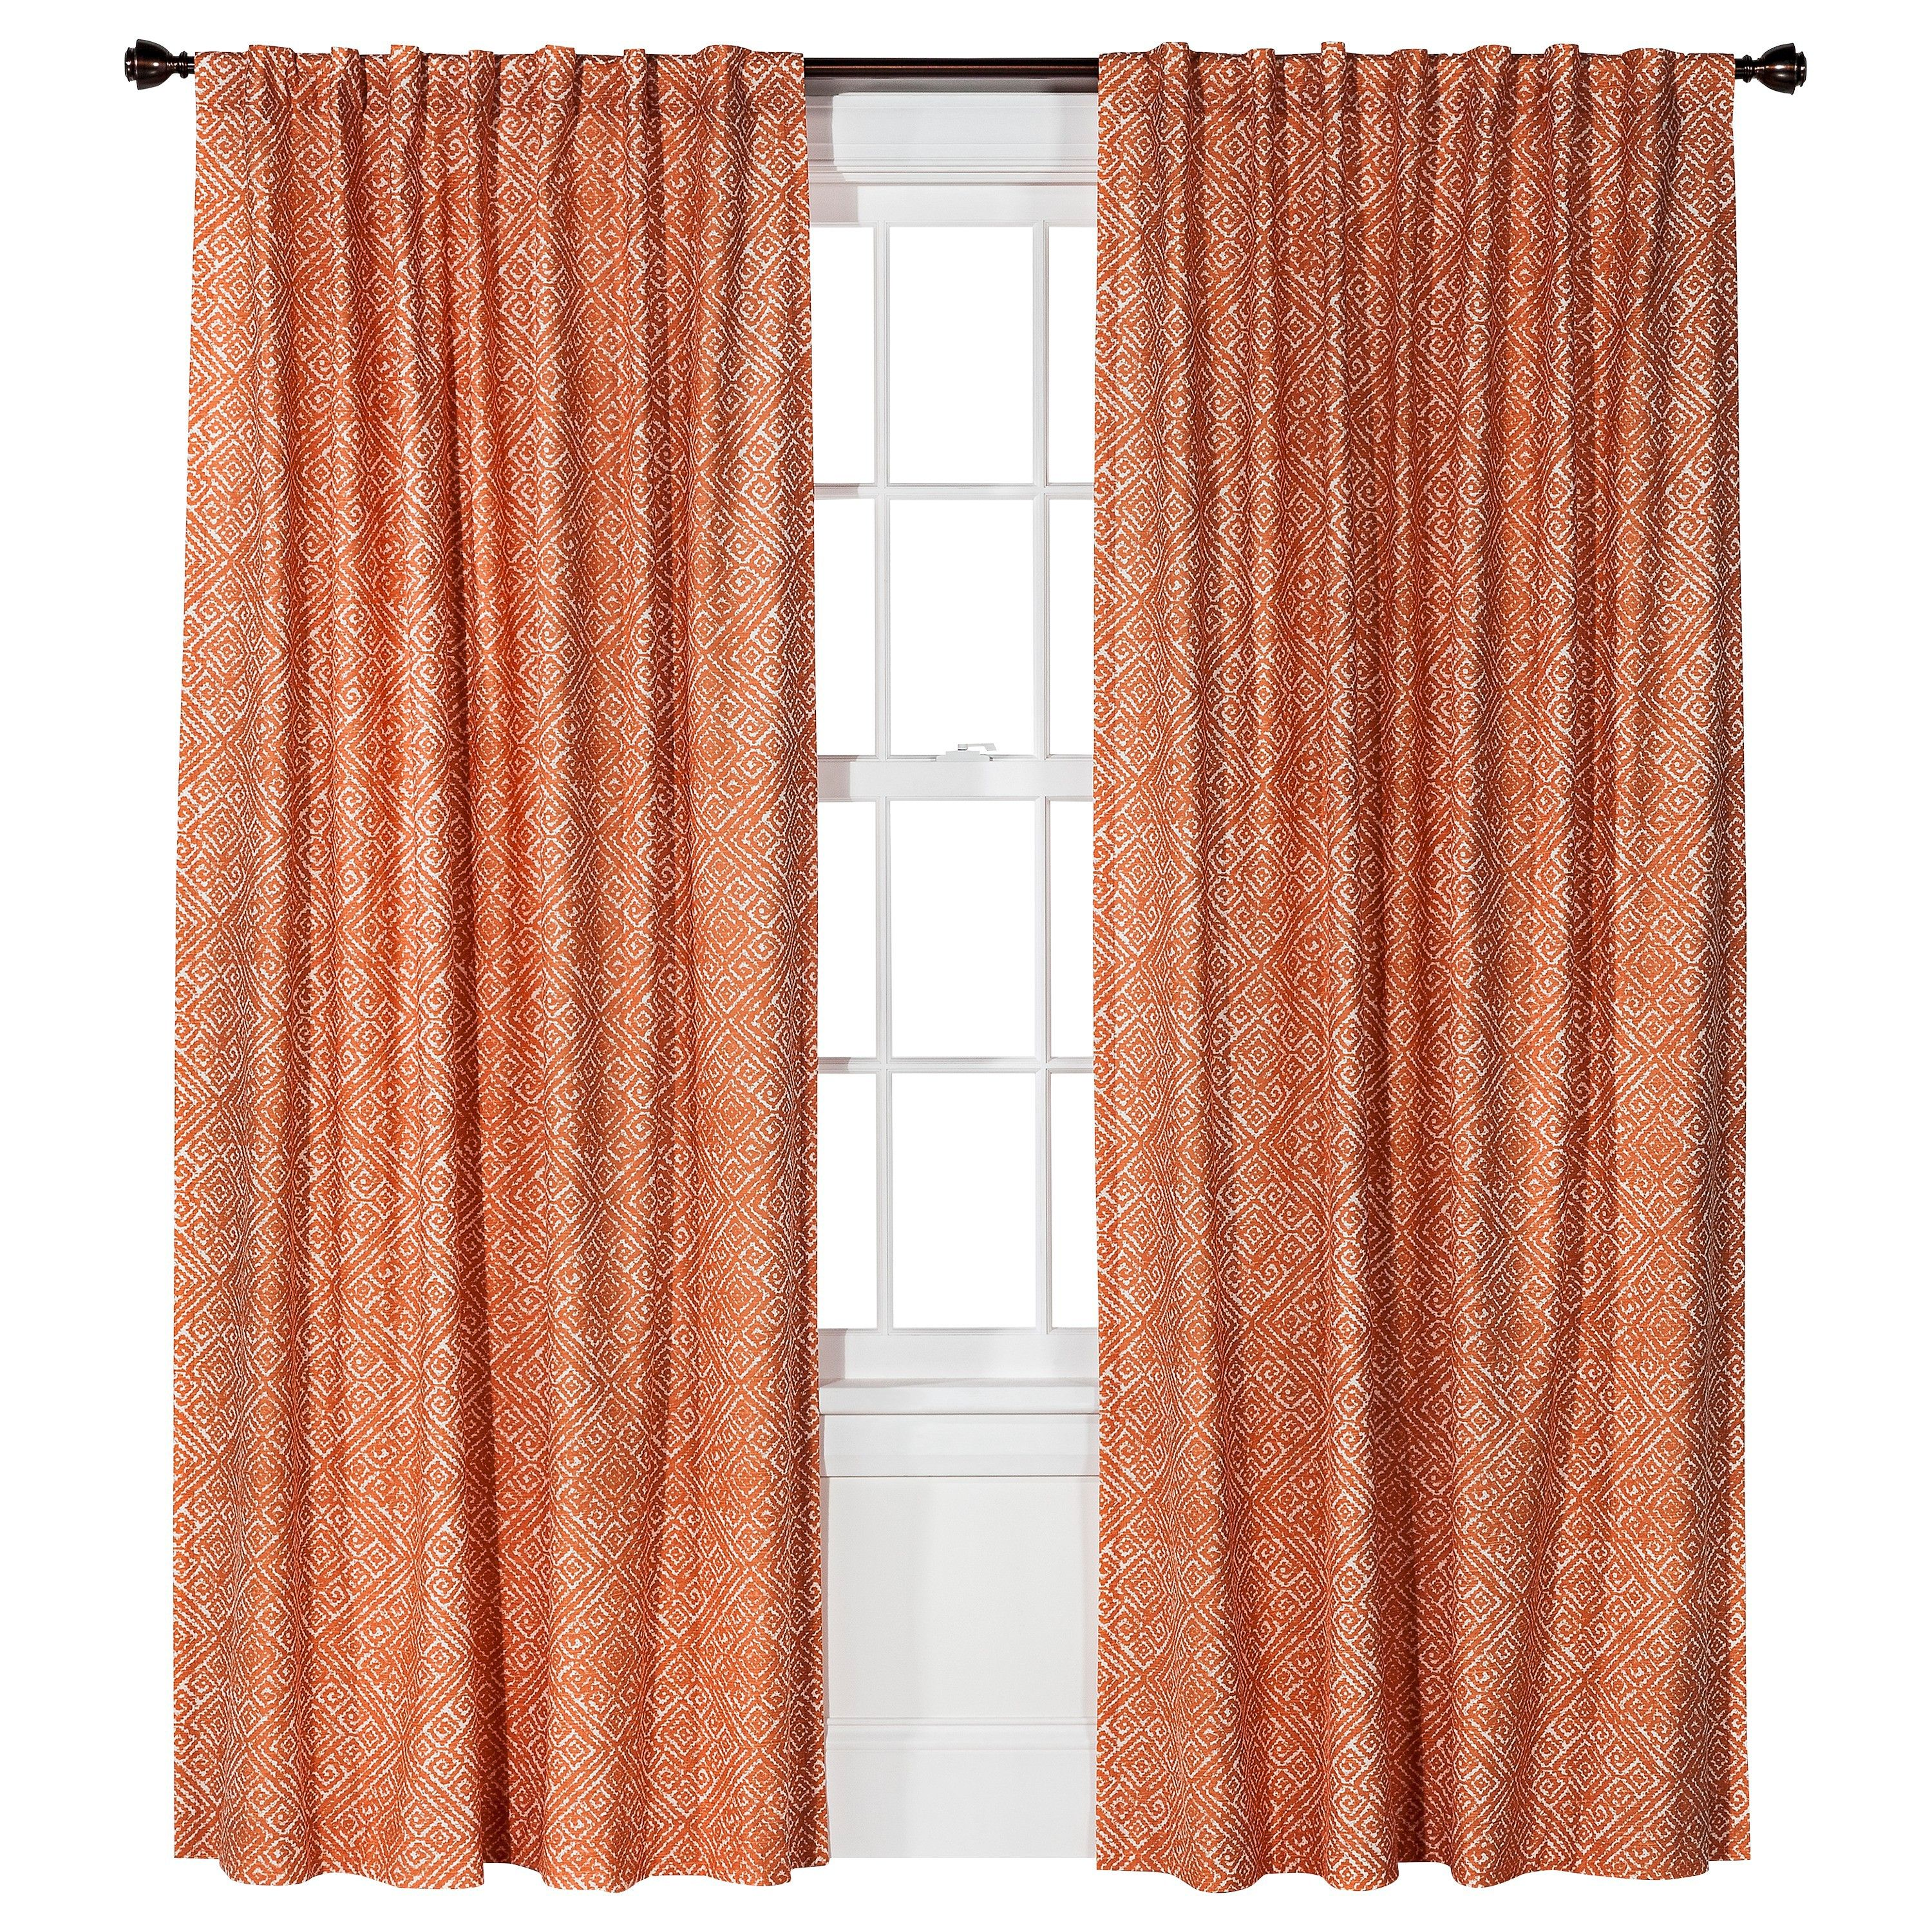 and window uncategorized best curtains of trends panelsorange picture grey sxs orange style kitchen curtain drapes panels